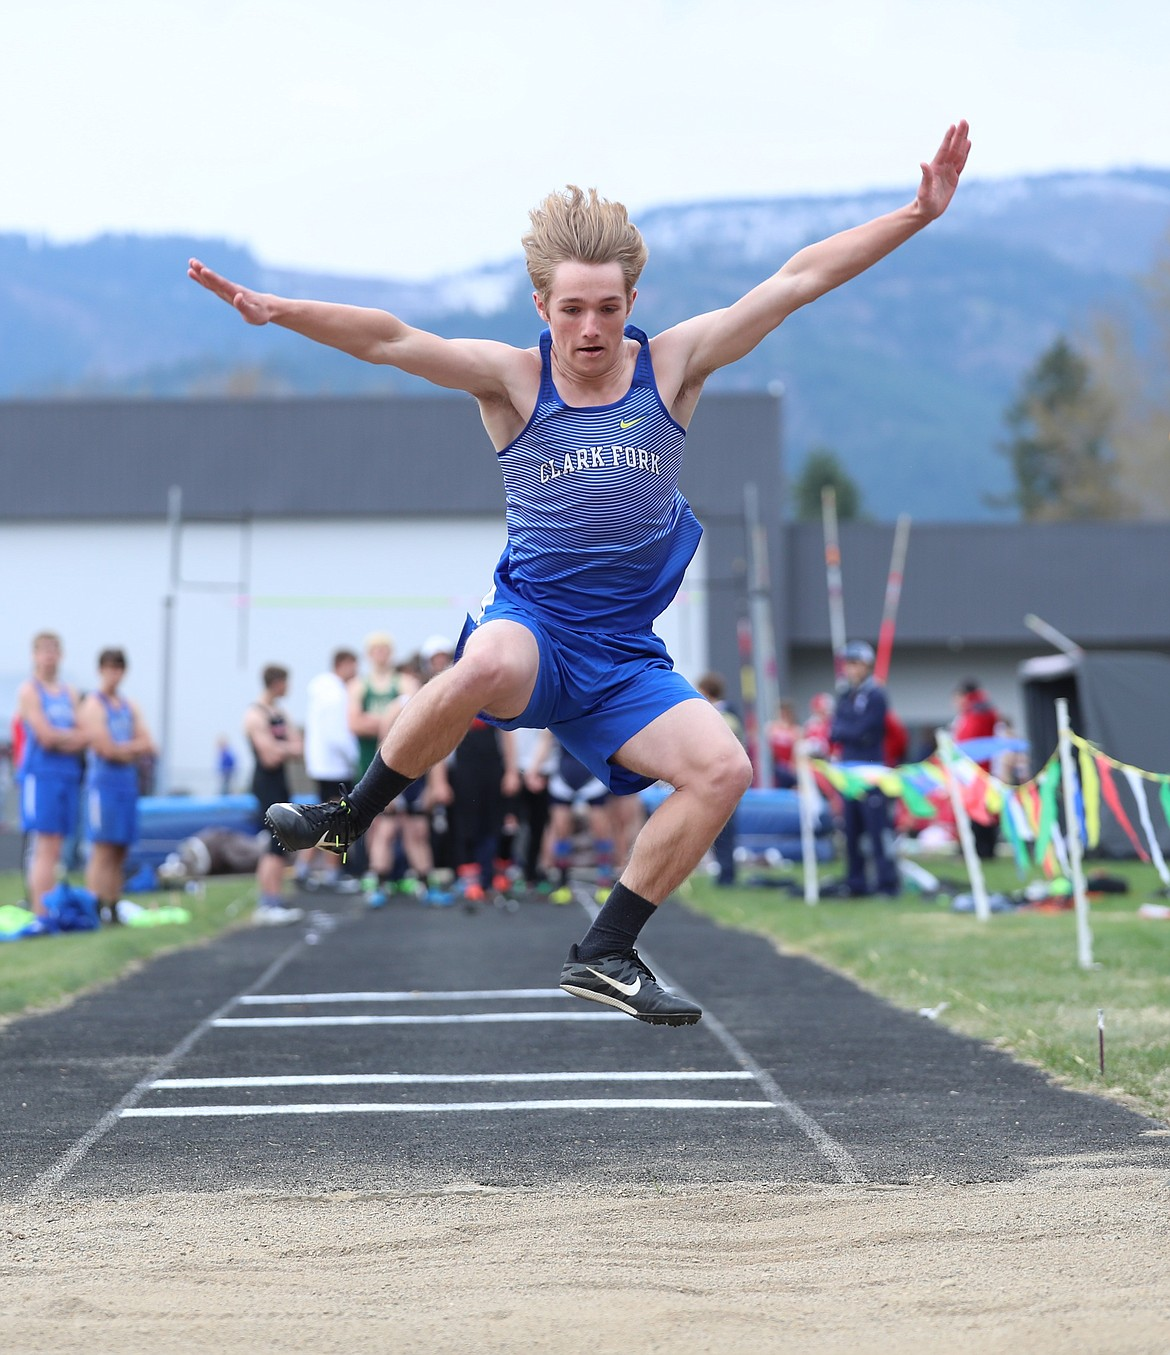 Wyatt Mintken prepares to land in the pit in the long jump on Saturday.